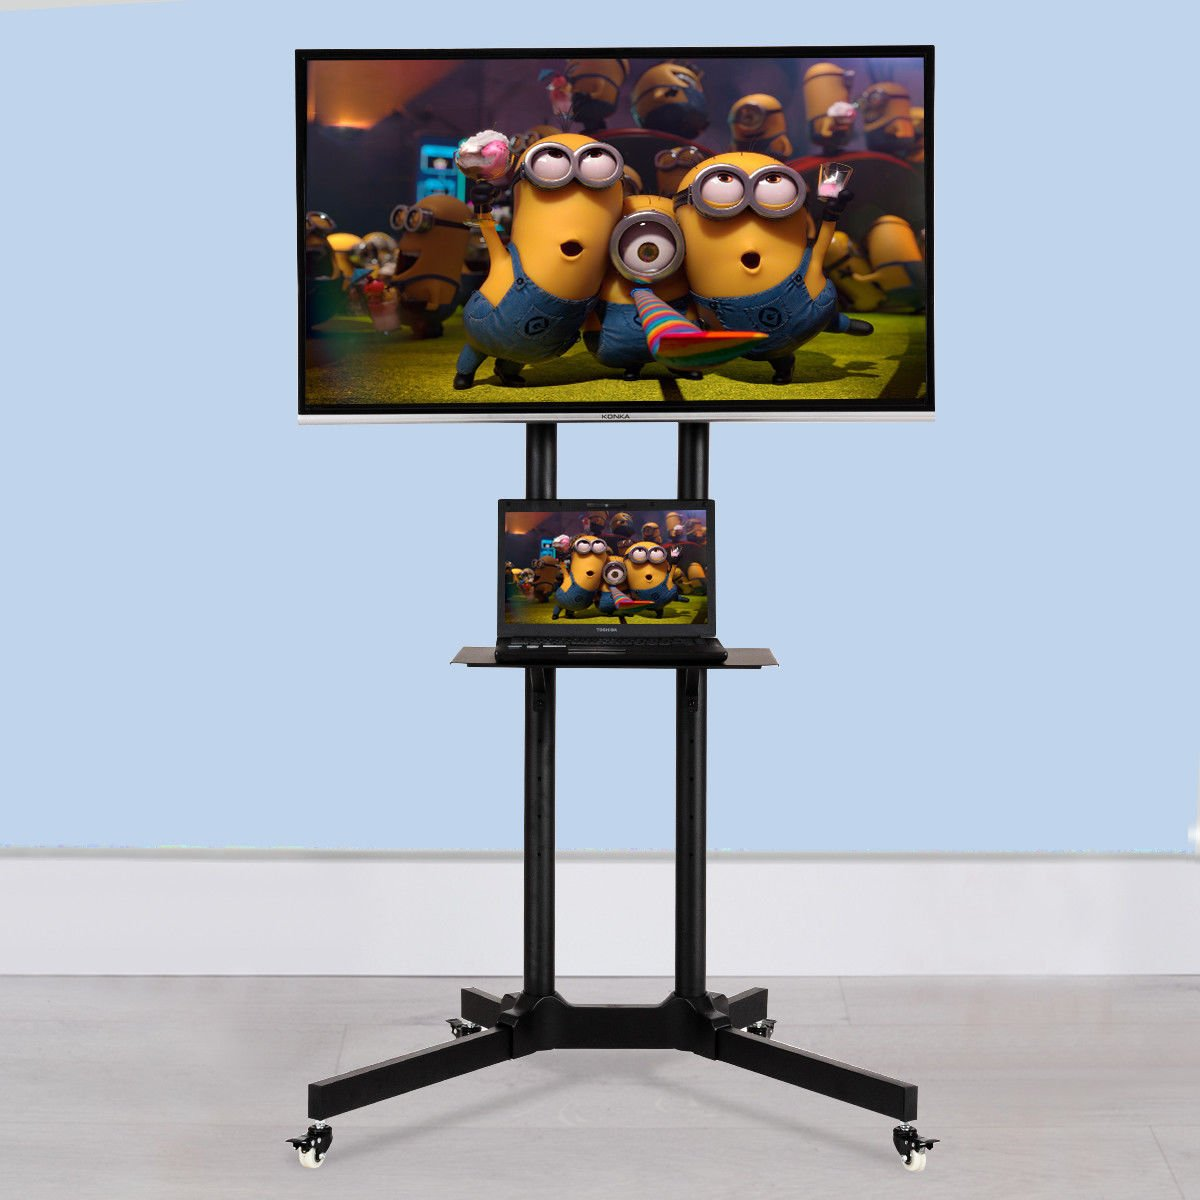 Tangkula TV Cart Mobile Plasma LCD LED Flat Screen Panel Fits 30''to 65'' TV Stand Mount with Shelf